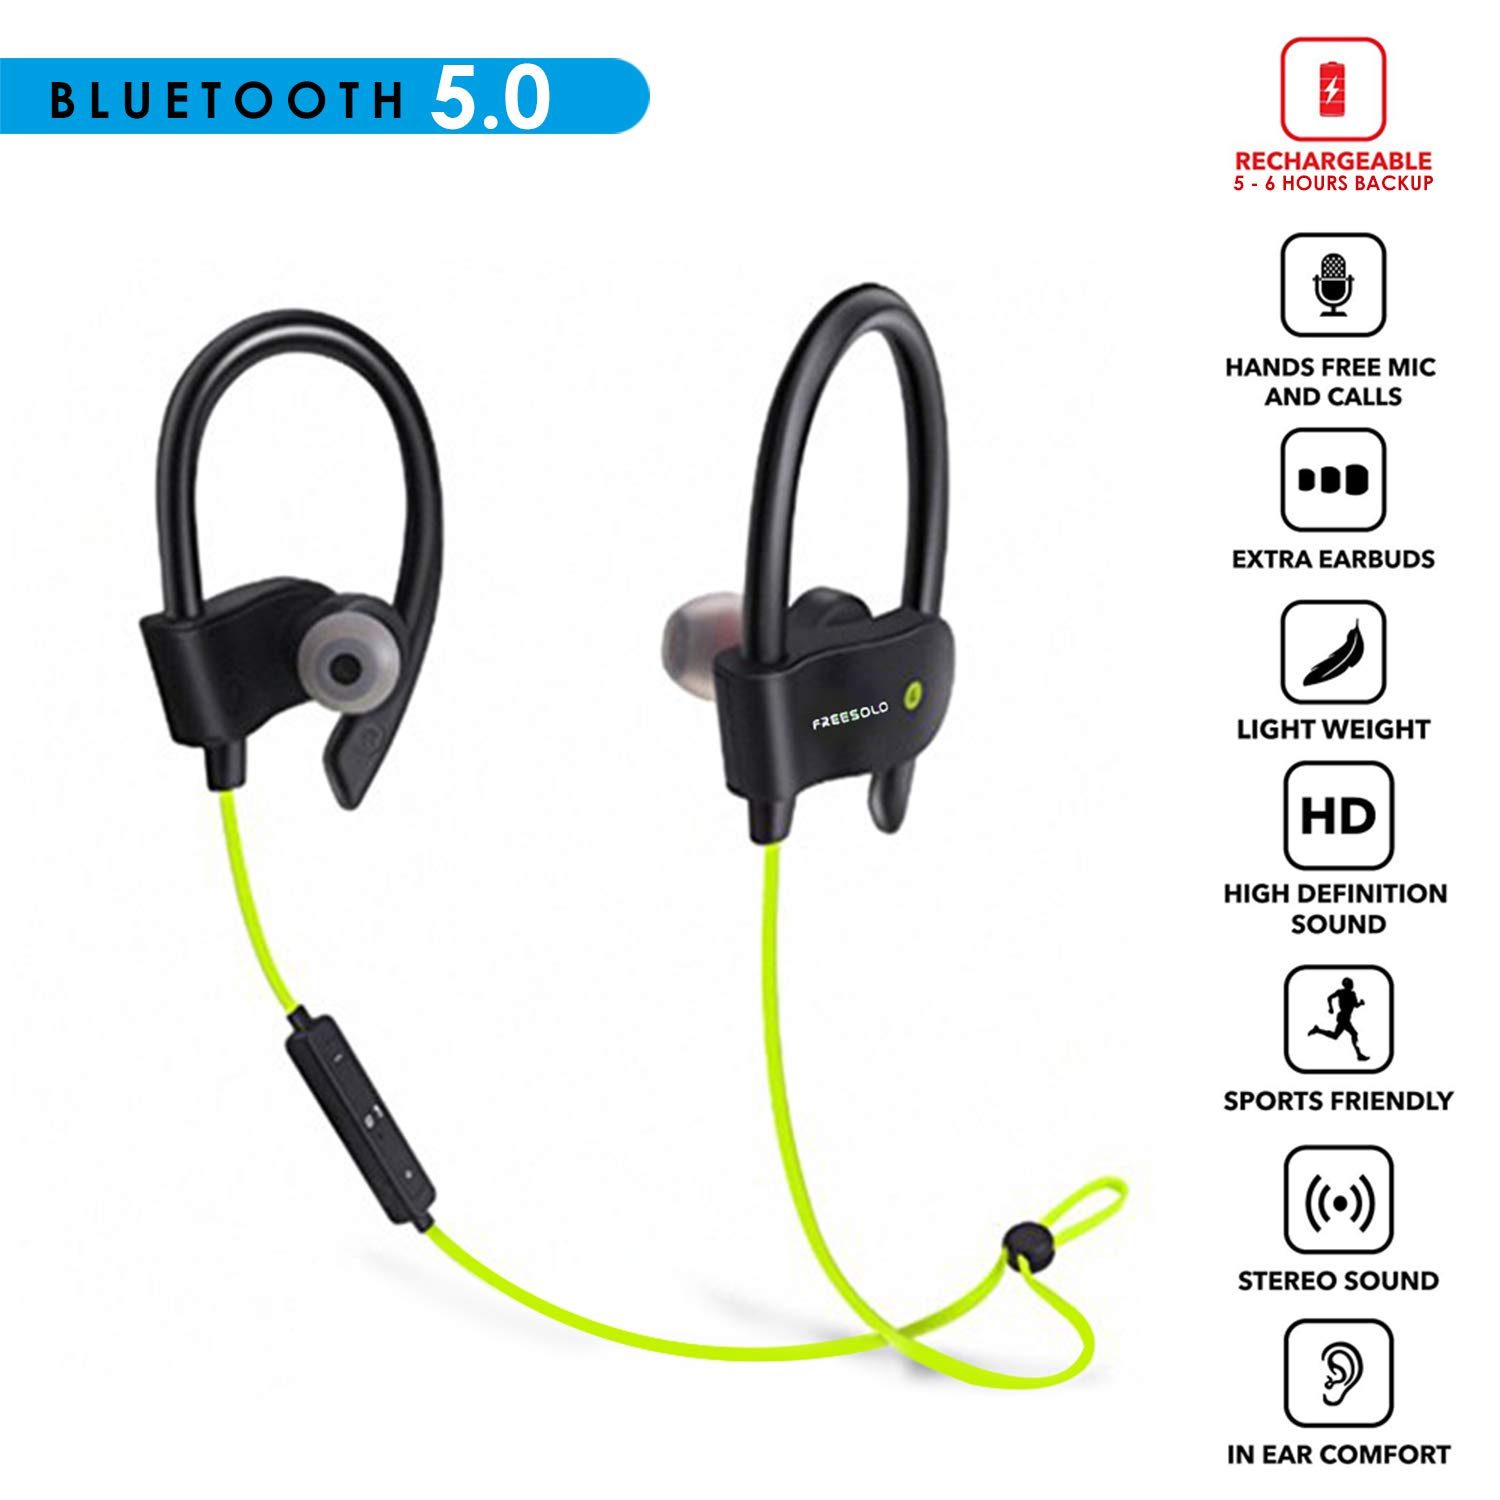 429db00143c FREESOLO Wireless Bluetooth 4.1 In-Ear Noise-Isolating, Sport Earbuds with  Mic and Controller, Sweatproof, Designed for Running, Jogging and Gym  (Vibrant ...